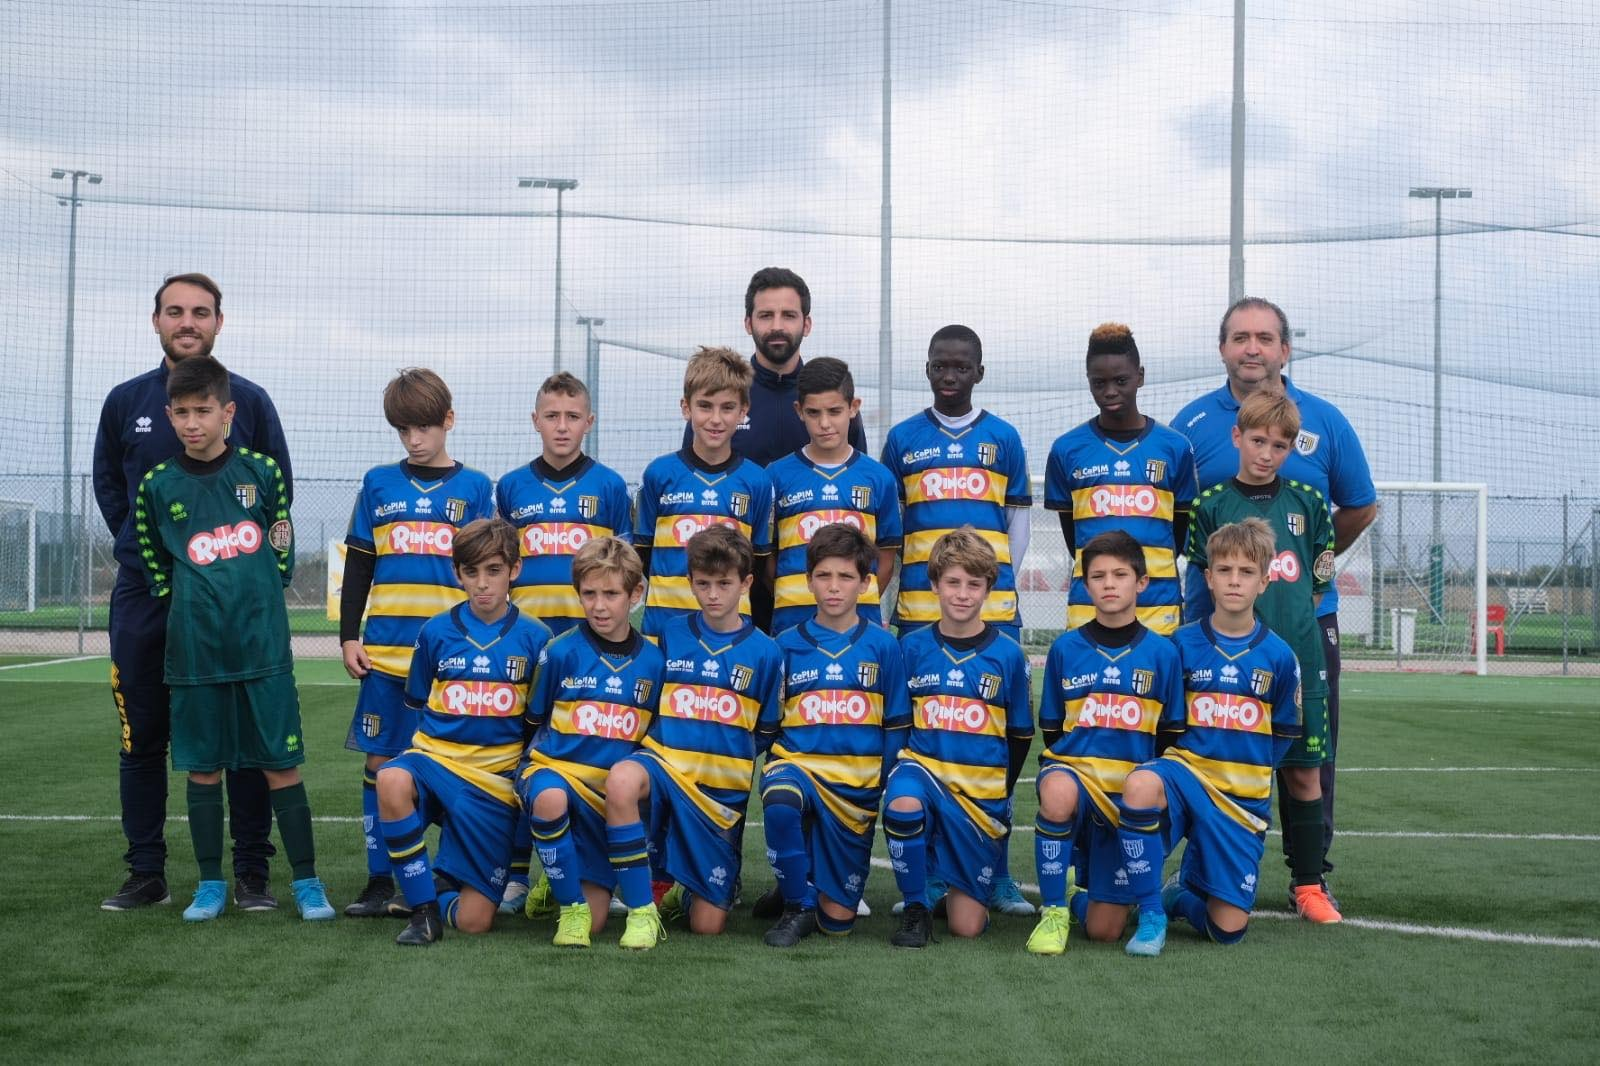 UNDER 12 FOTO TROFEO CAROLI HOTELS GALLIPOLI 31 OTTOBRE 3 NOVEMBRE 2019